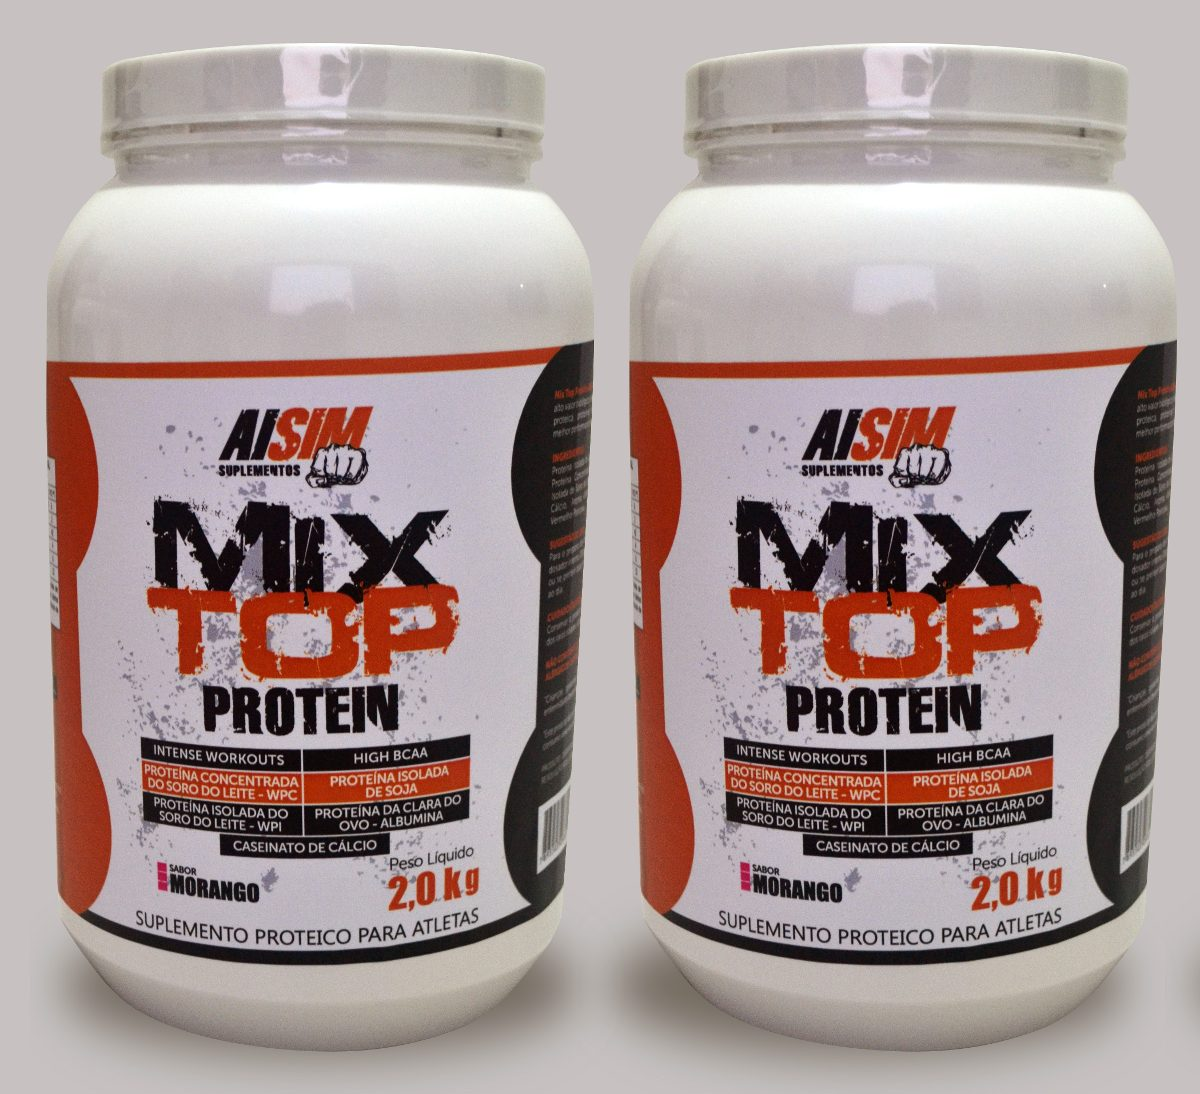 cc27e13a2 Combo 2 Whey Protein 2kg Total 4kg Mix Protein Top Aisim - R  90